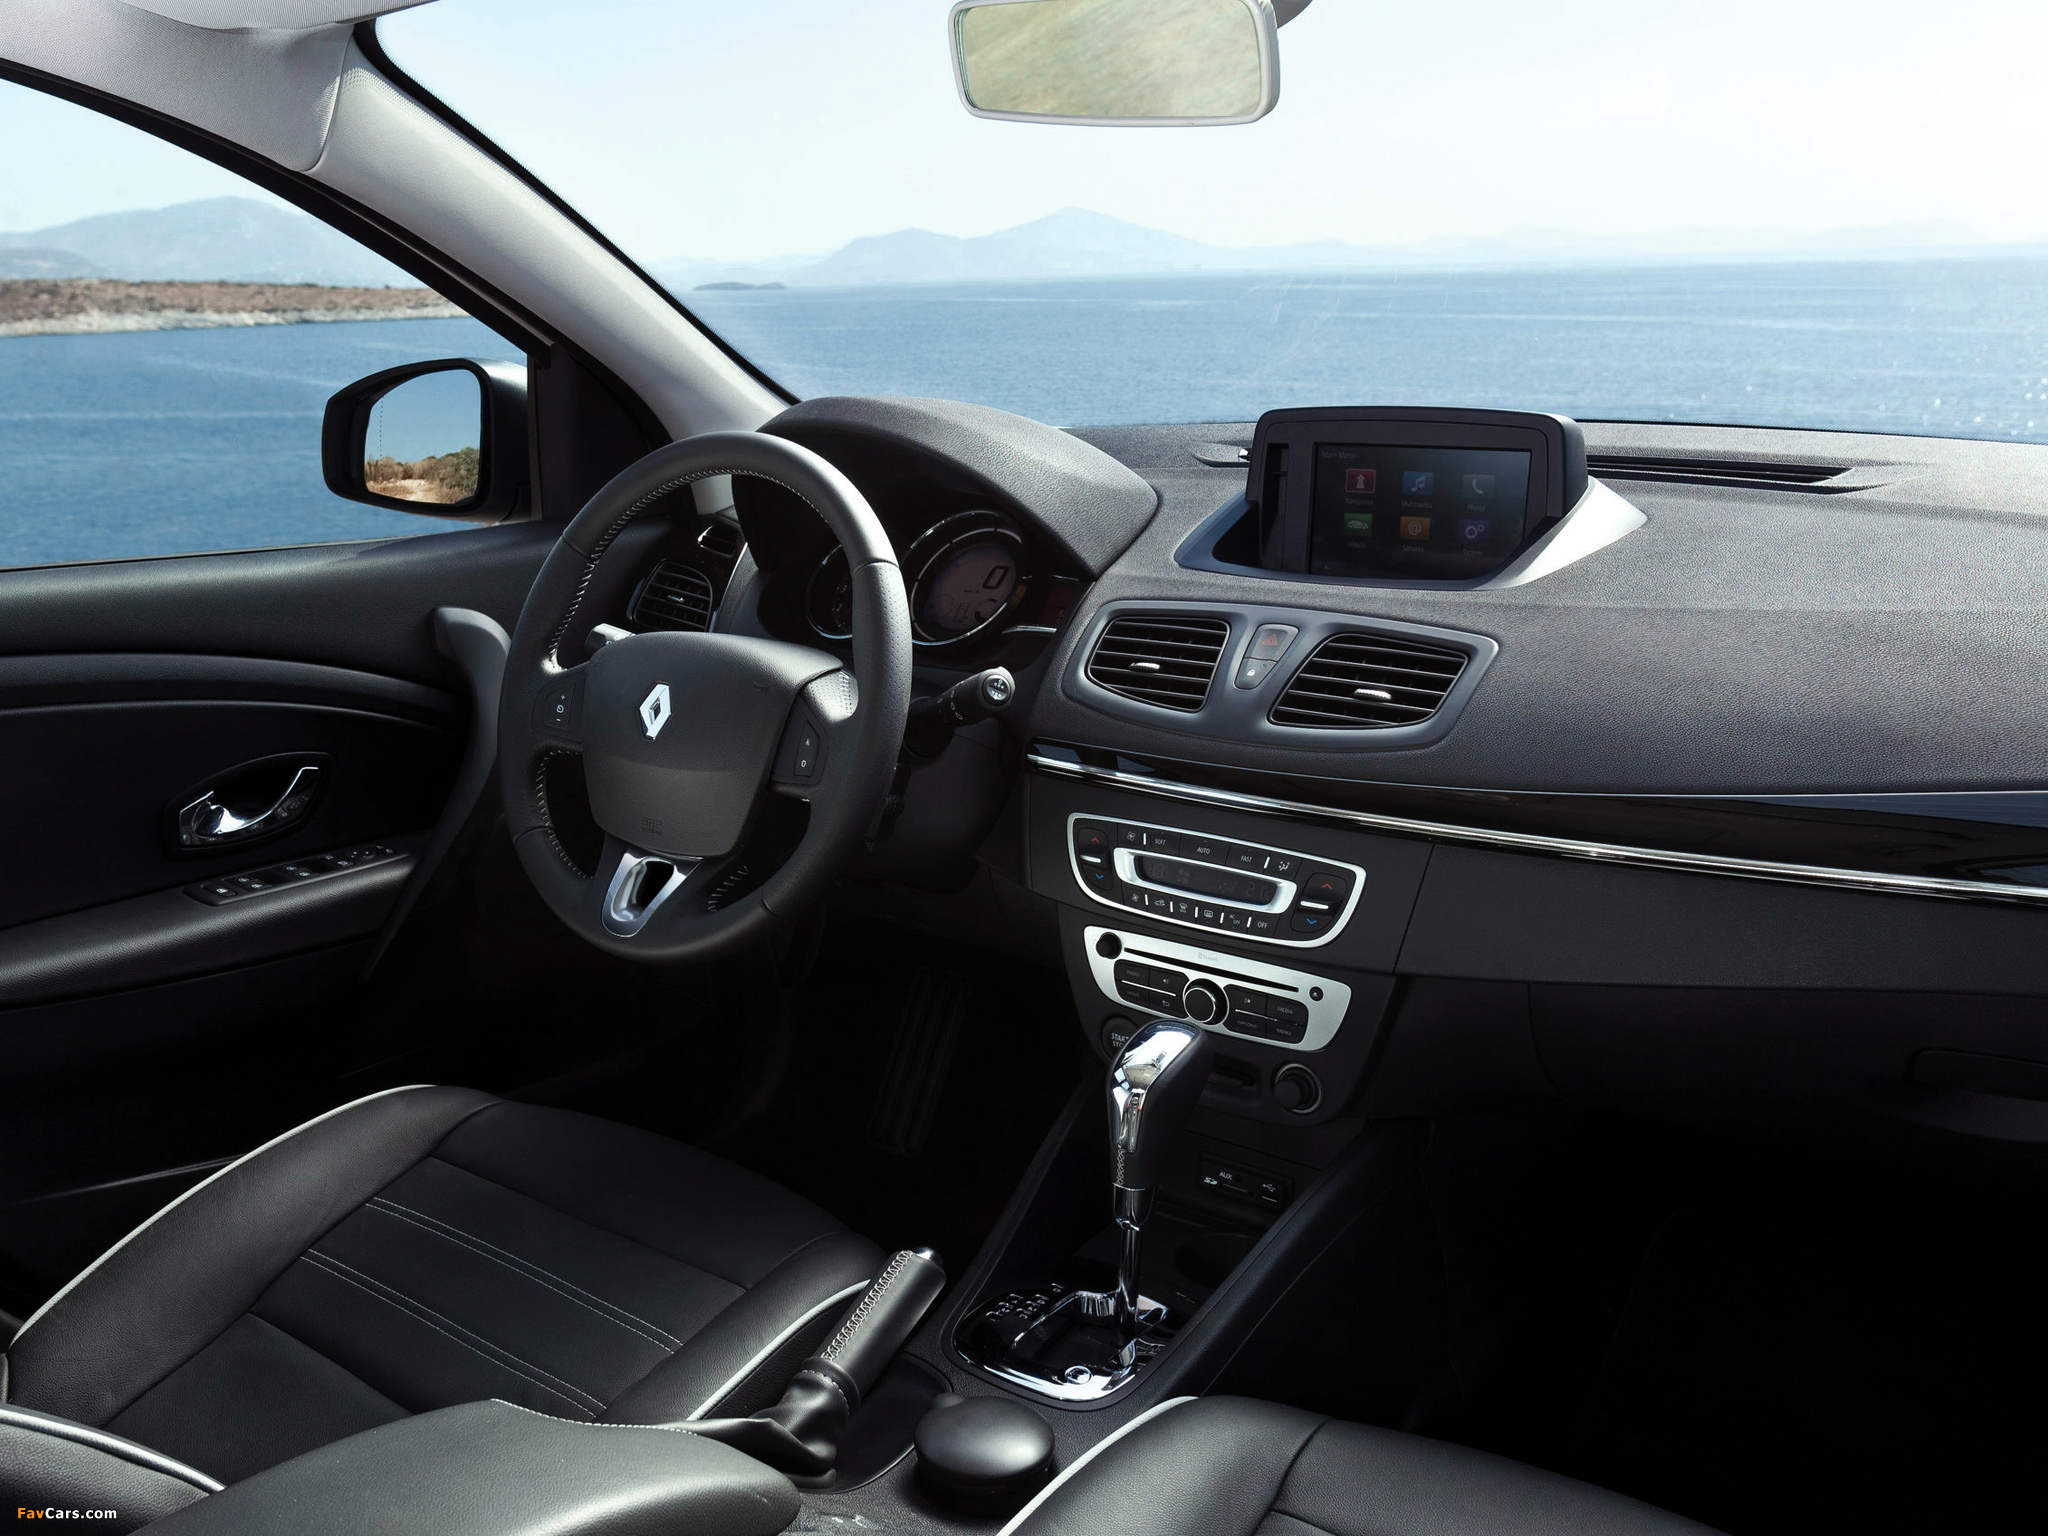 Renault Fluence 2012 pictures (2048 x 1536)